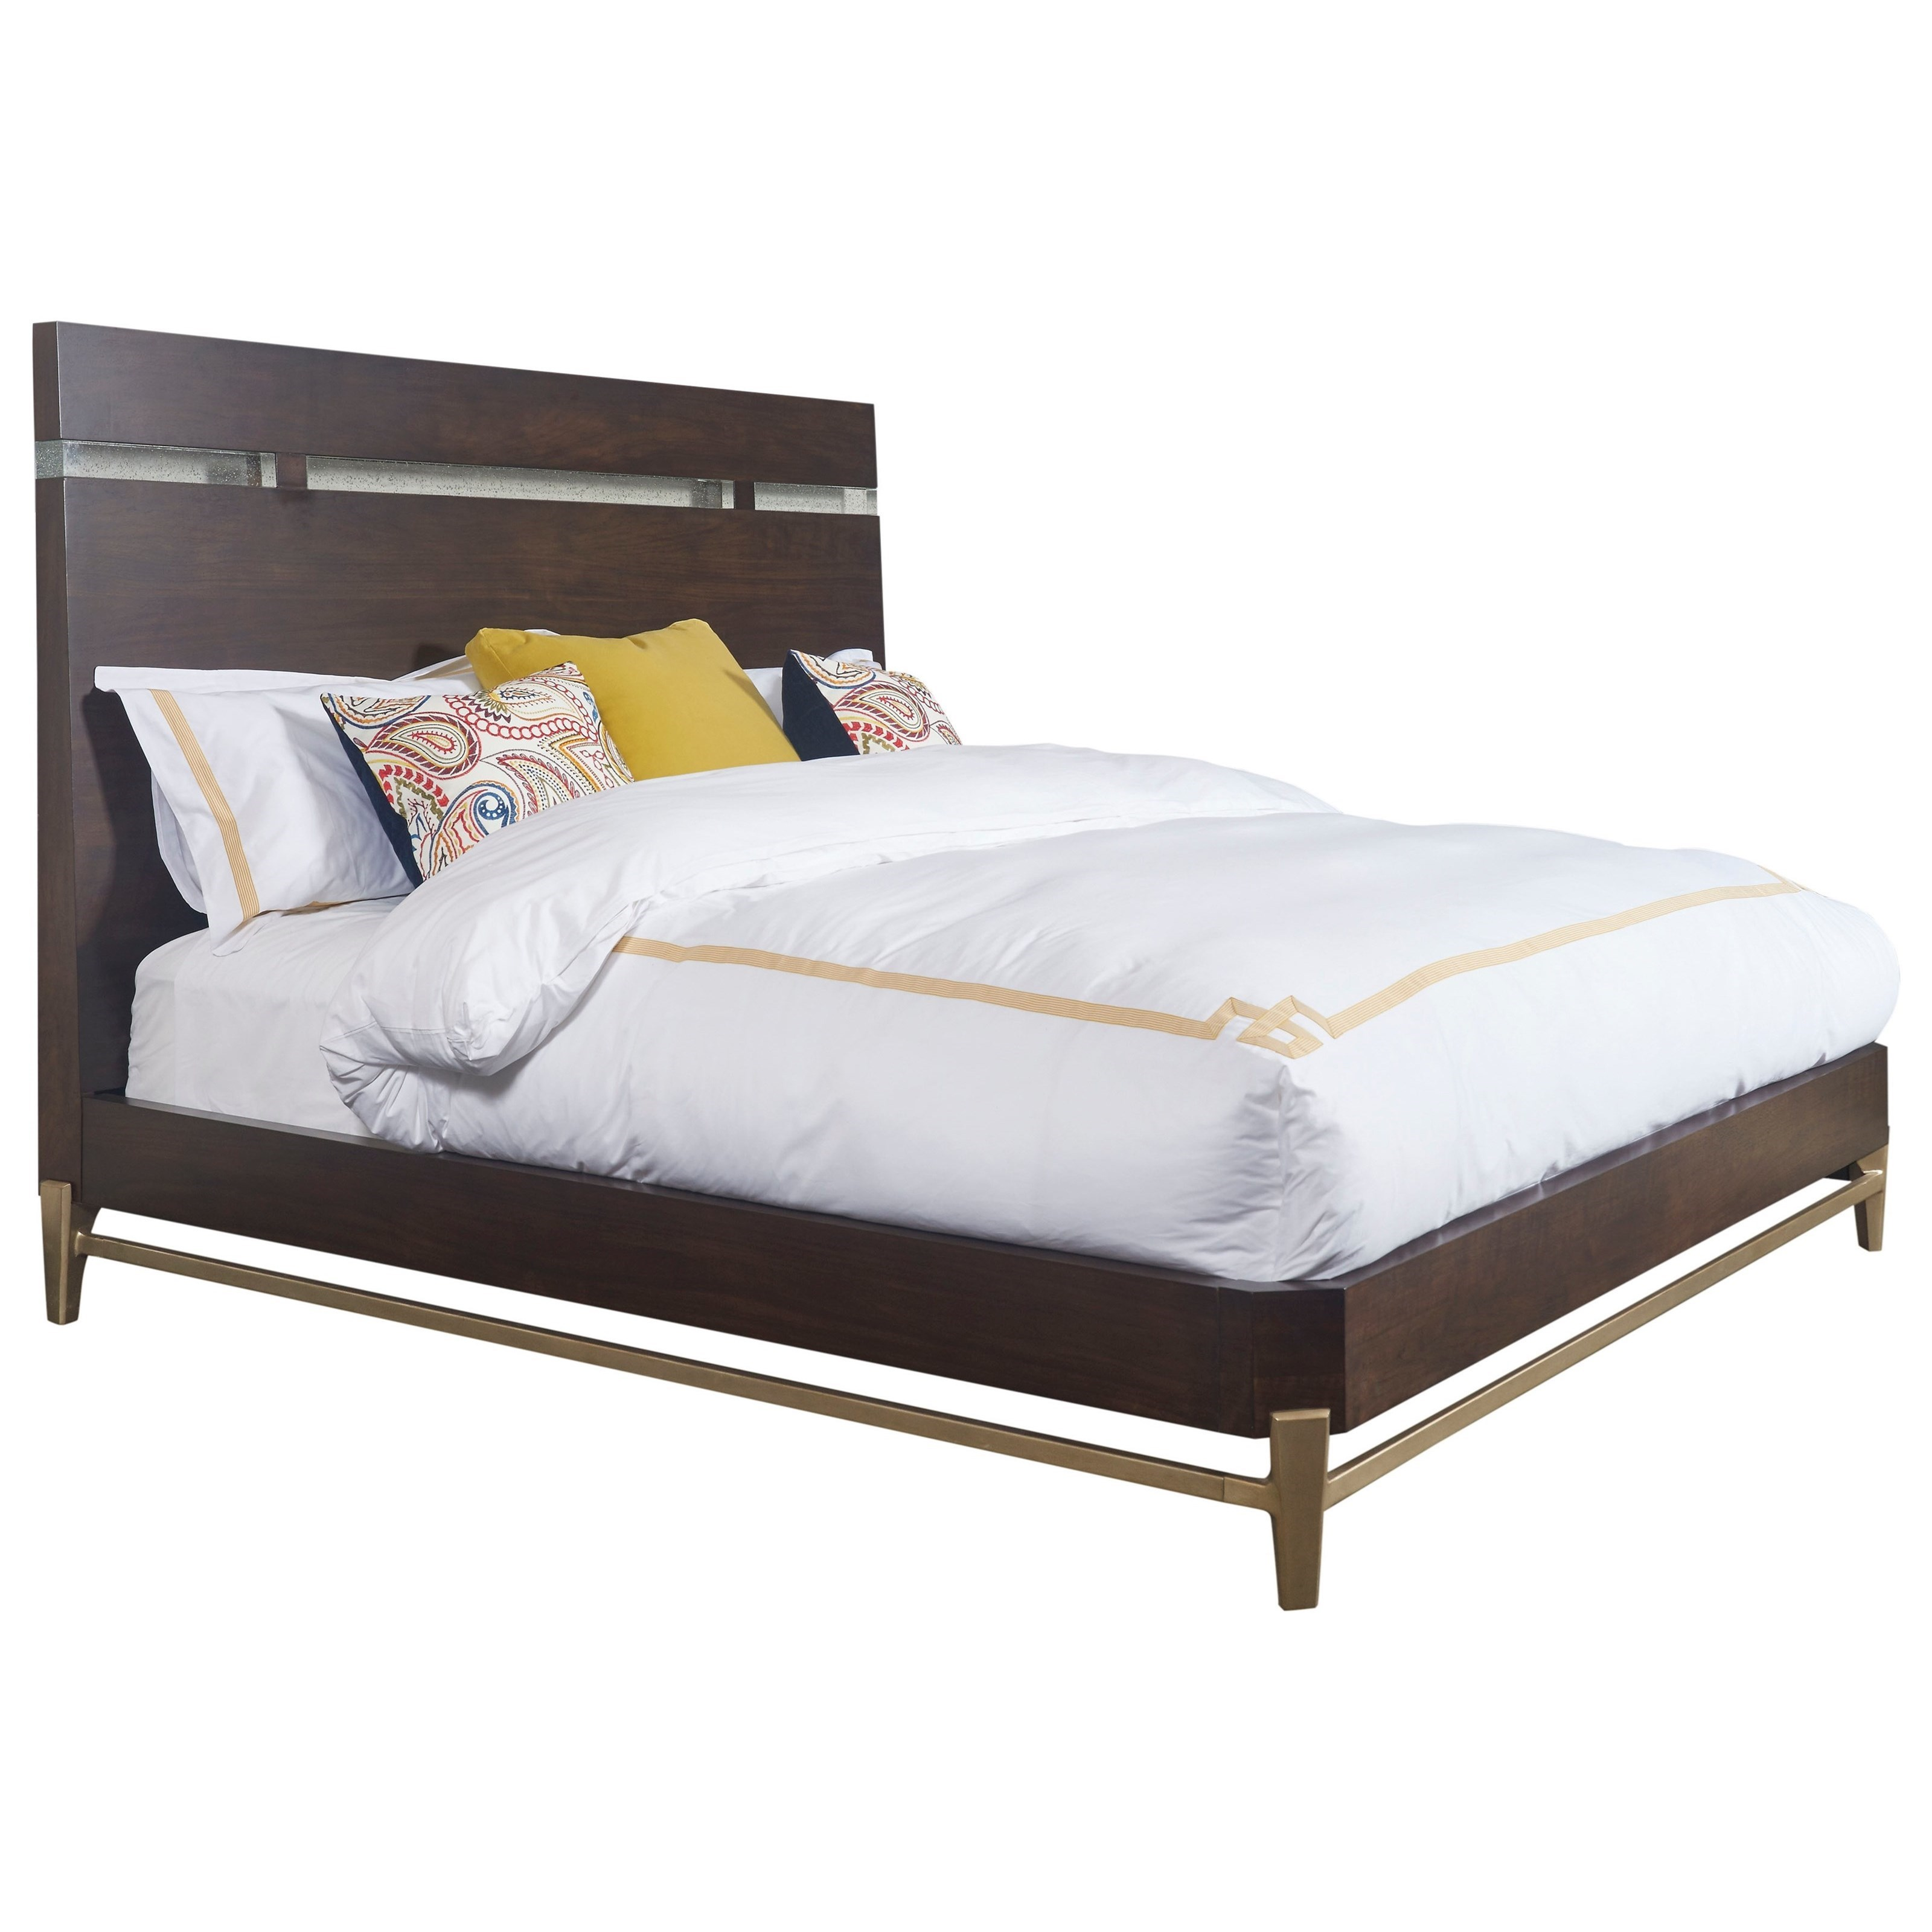 furniture twin sheet diego stores doc set bathroom with shelf comforter fl tag tags mirror naples mcstuffins dr and bed bedroom san small